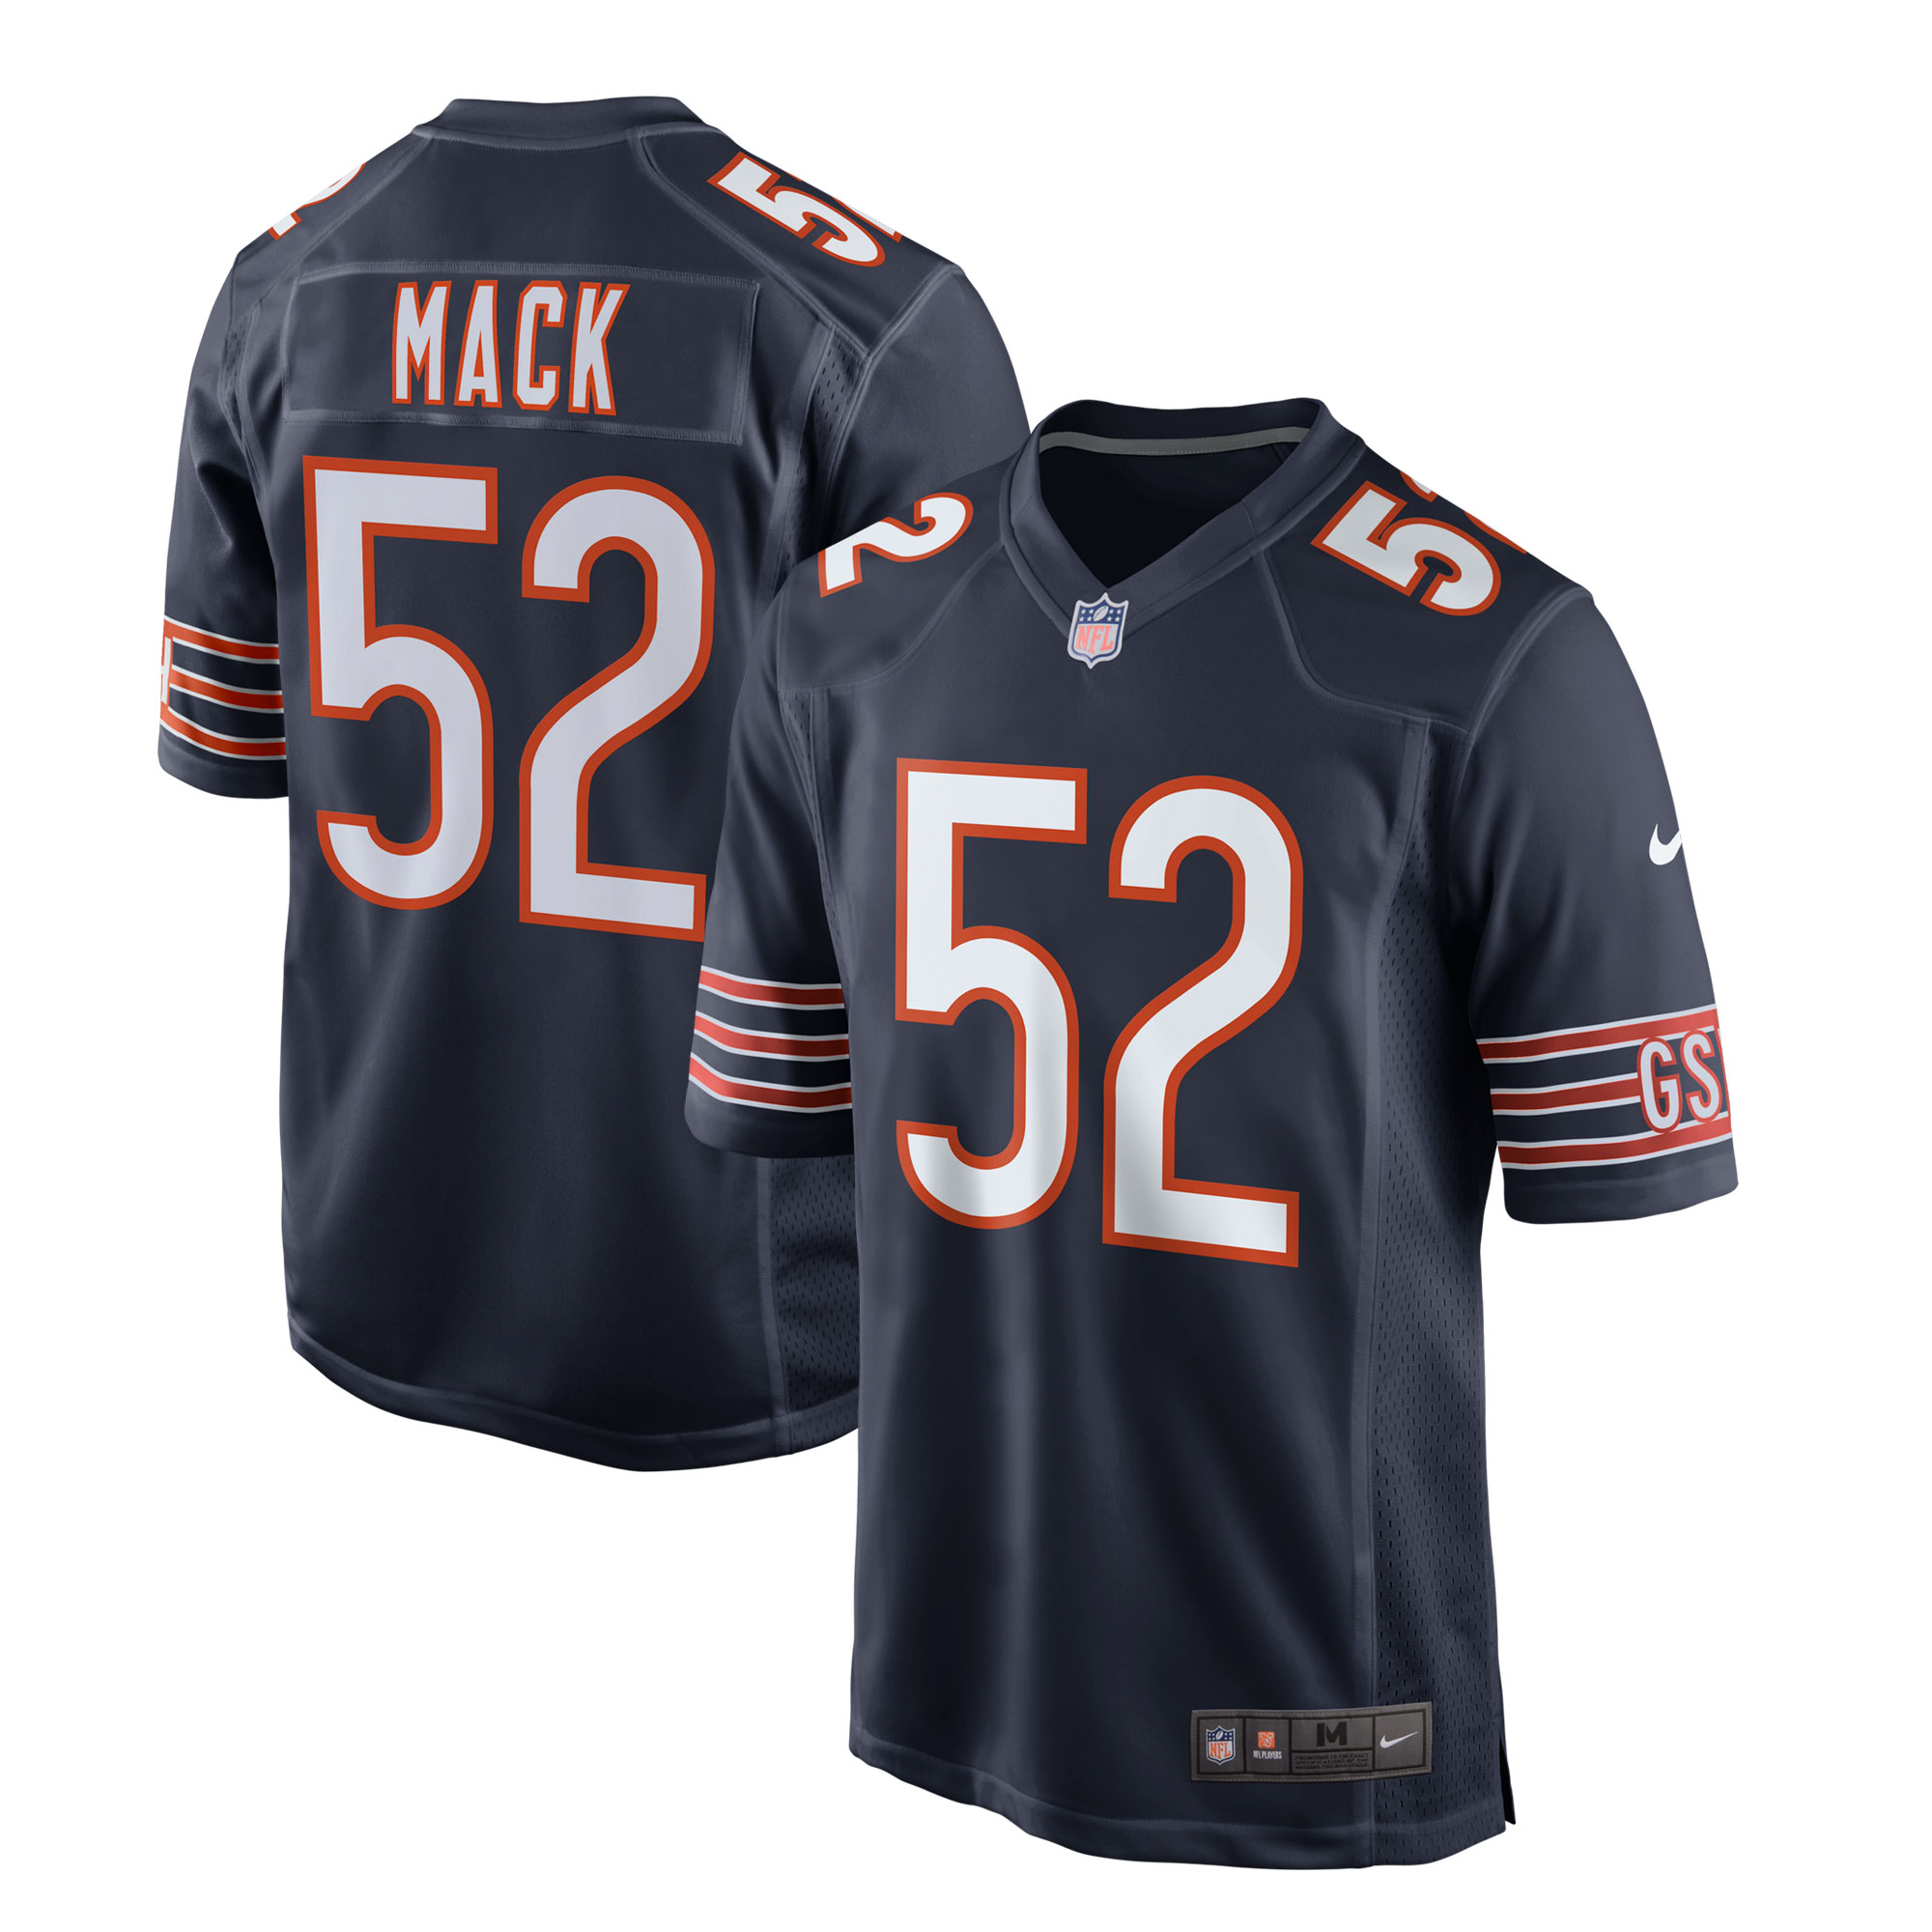 NFL Fan Shop - Walmart.com ef83999351c